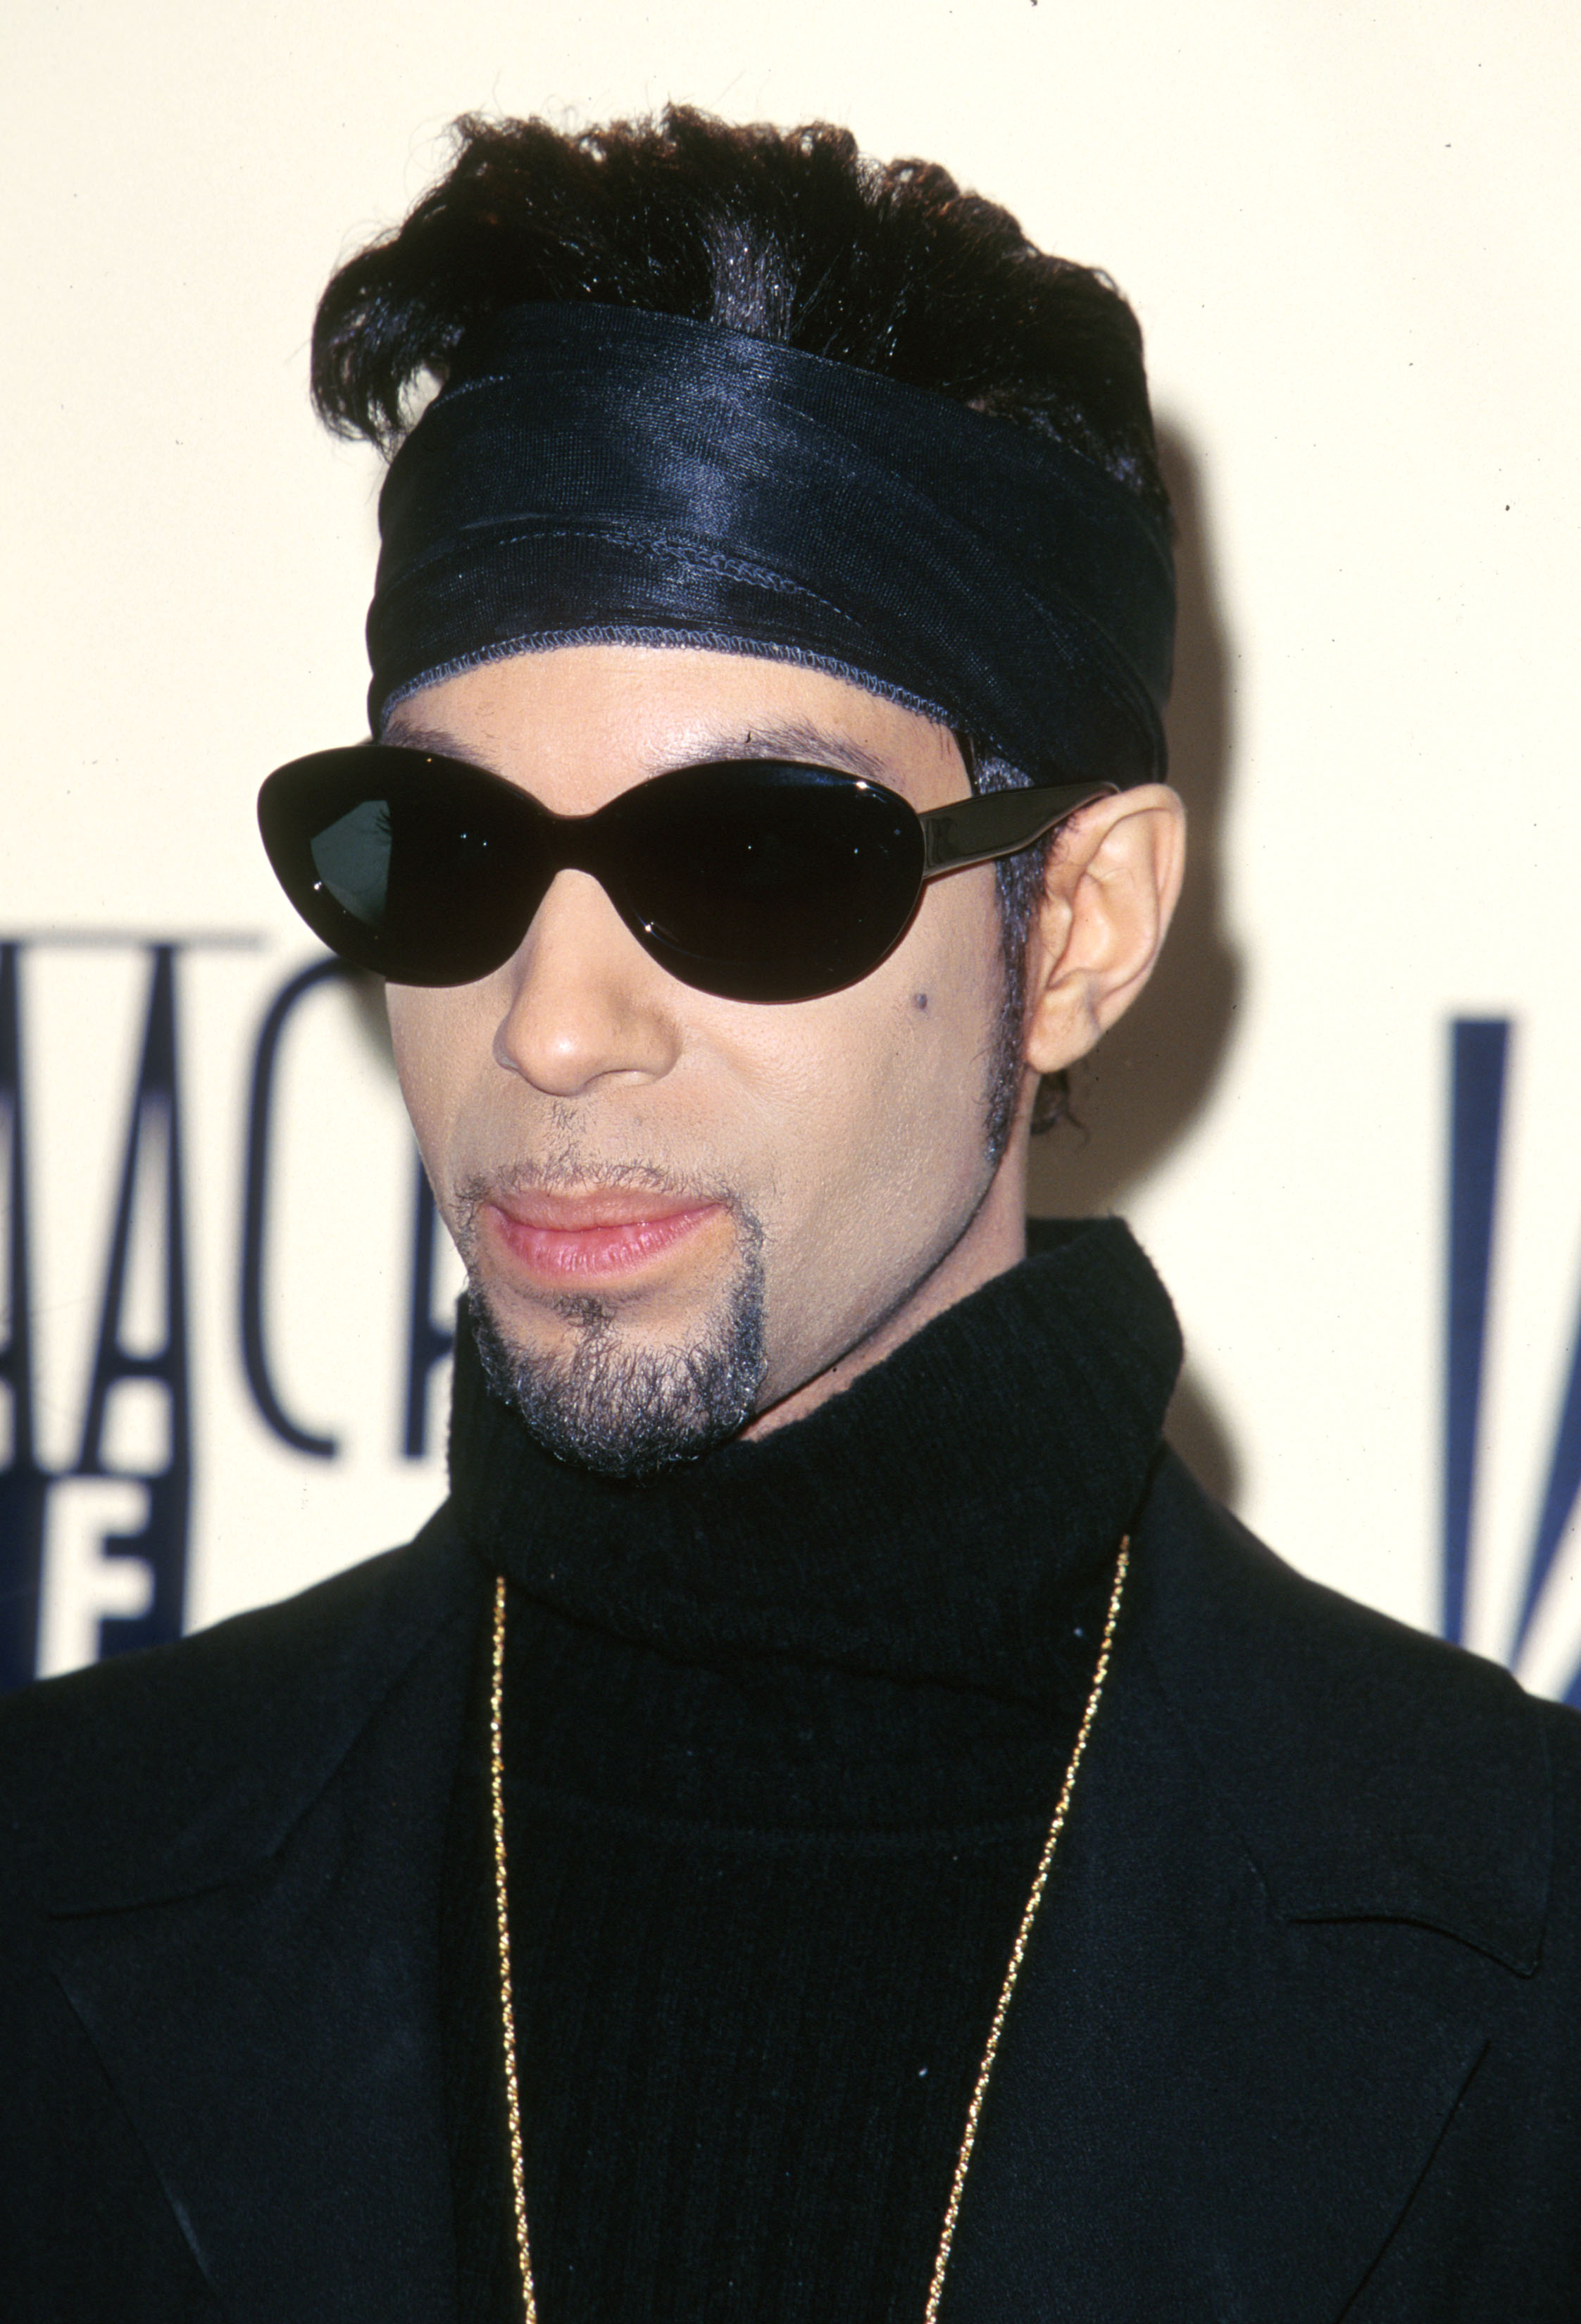 Prince-1997-NAACP-Image-Awards.jpg